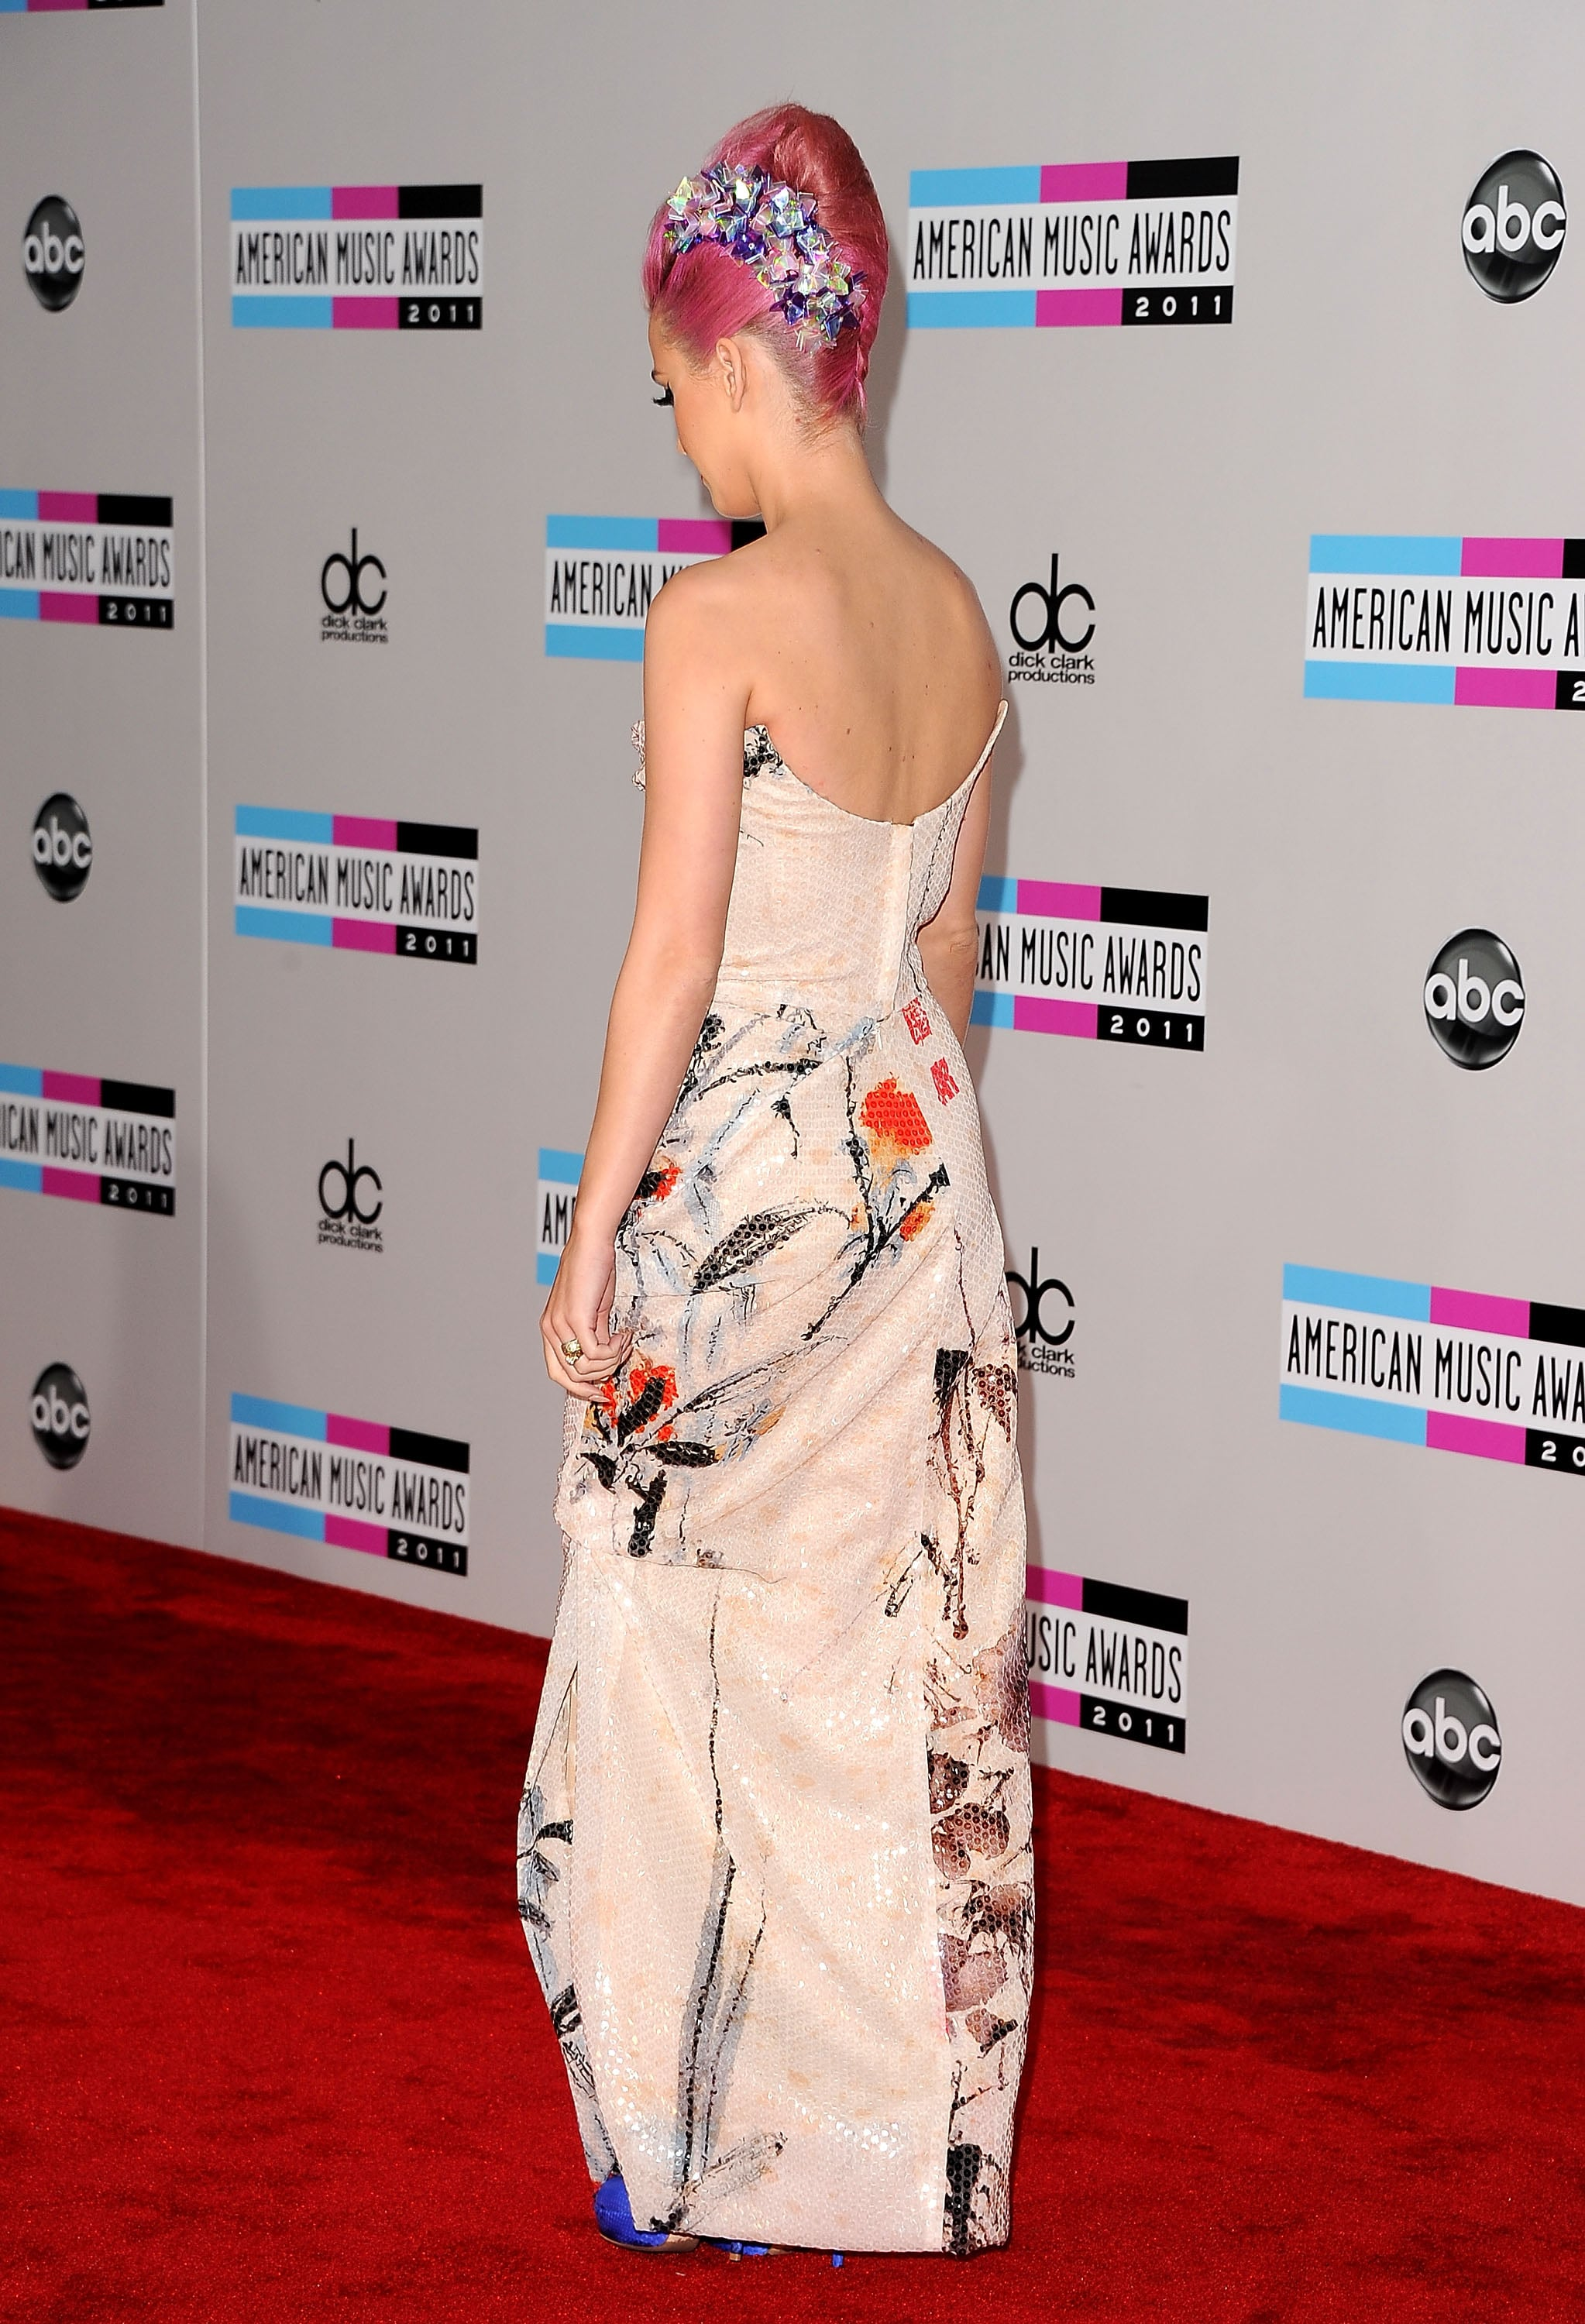 Katy Perry at the American Music Awards.